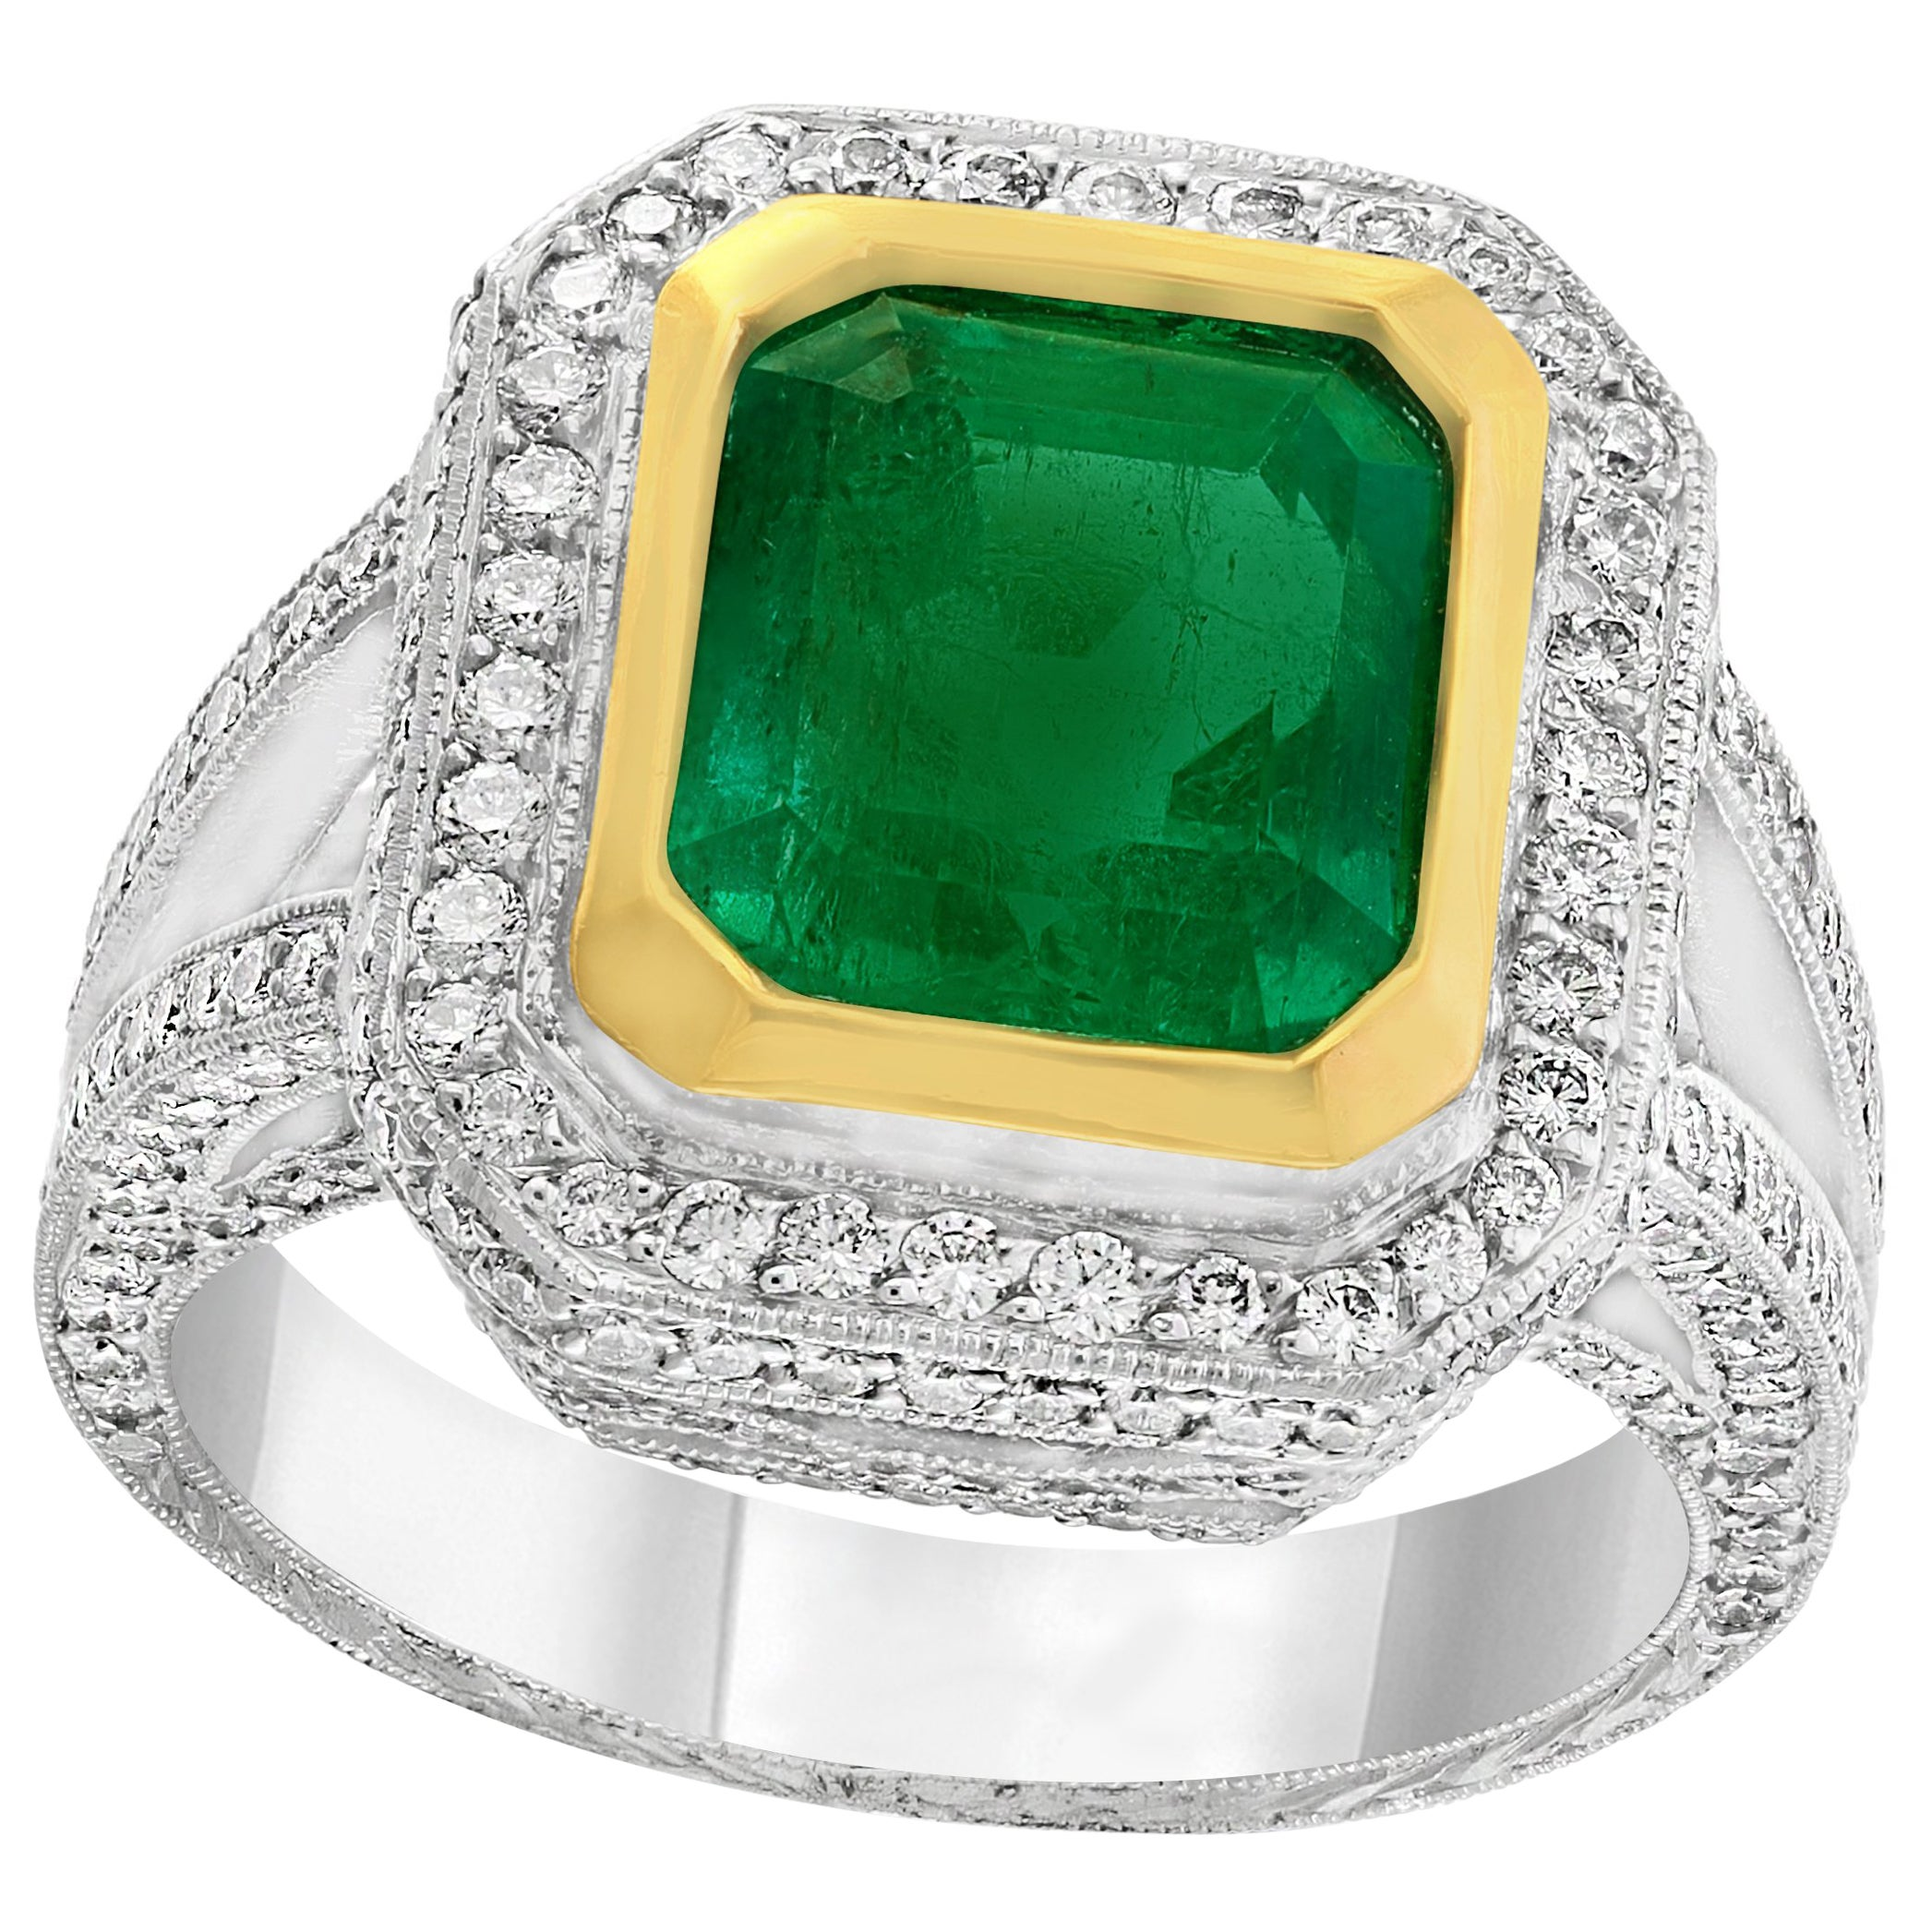 3.8 Carat Emerald Cut Colombian Emerald and Diamond Ring Platinum, Two-Tone